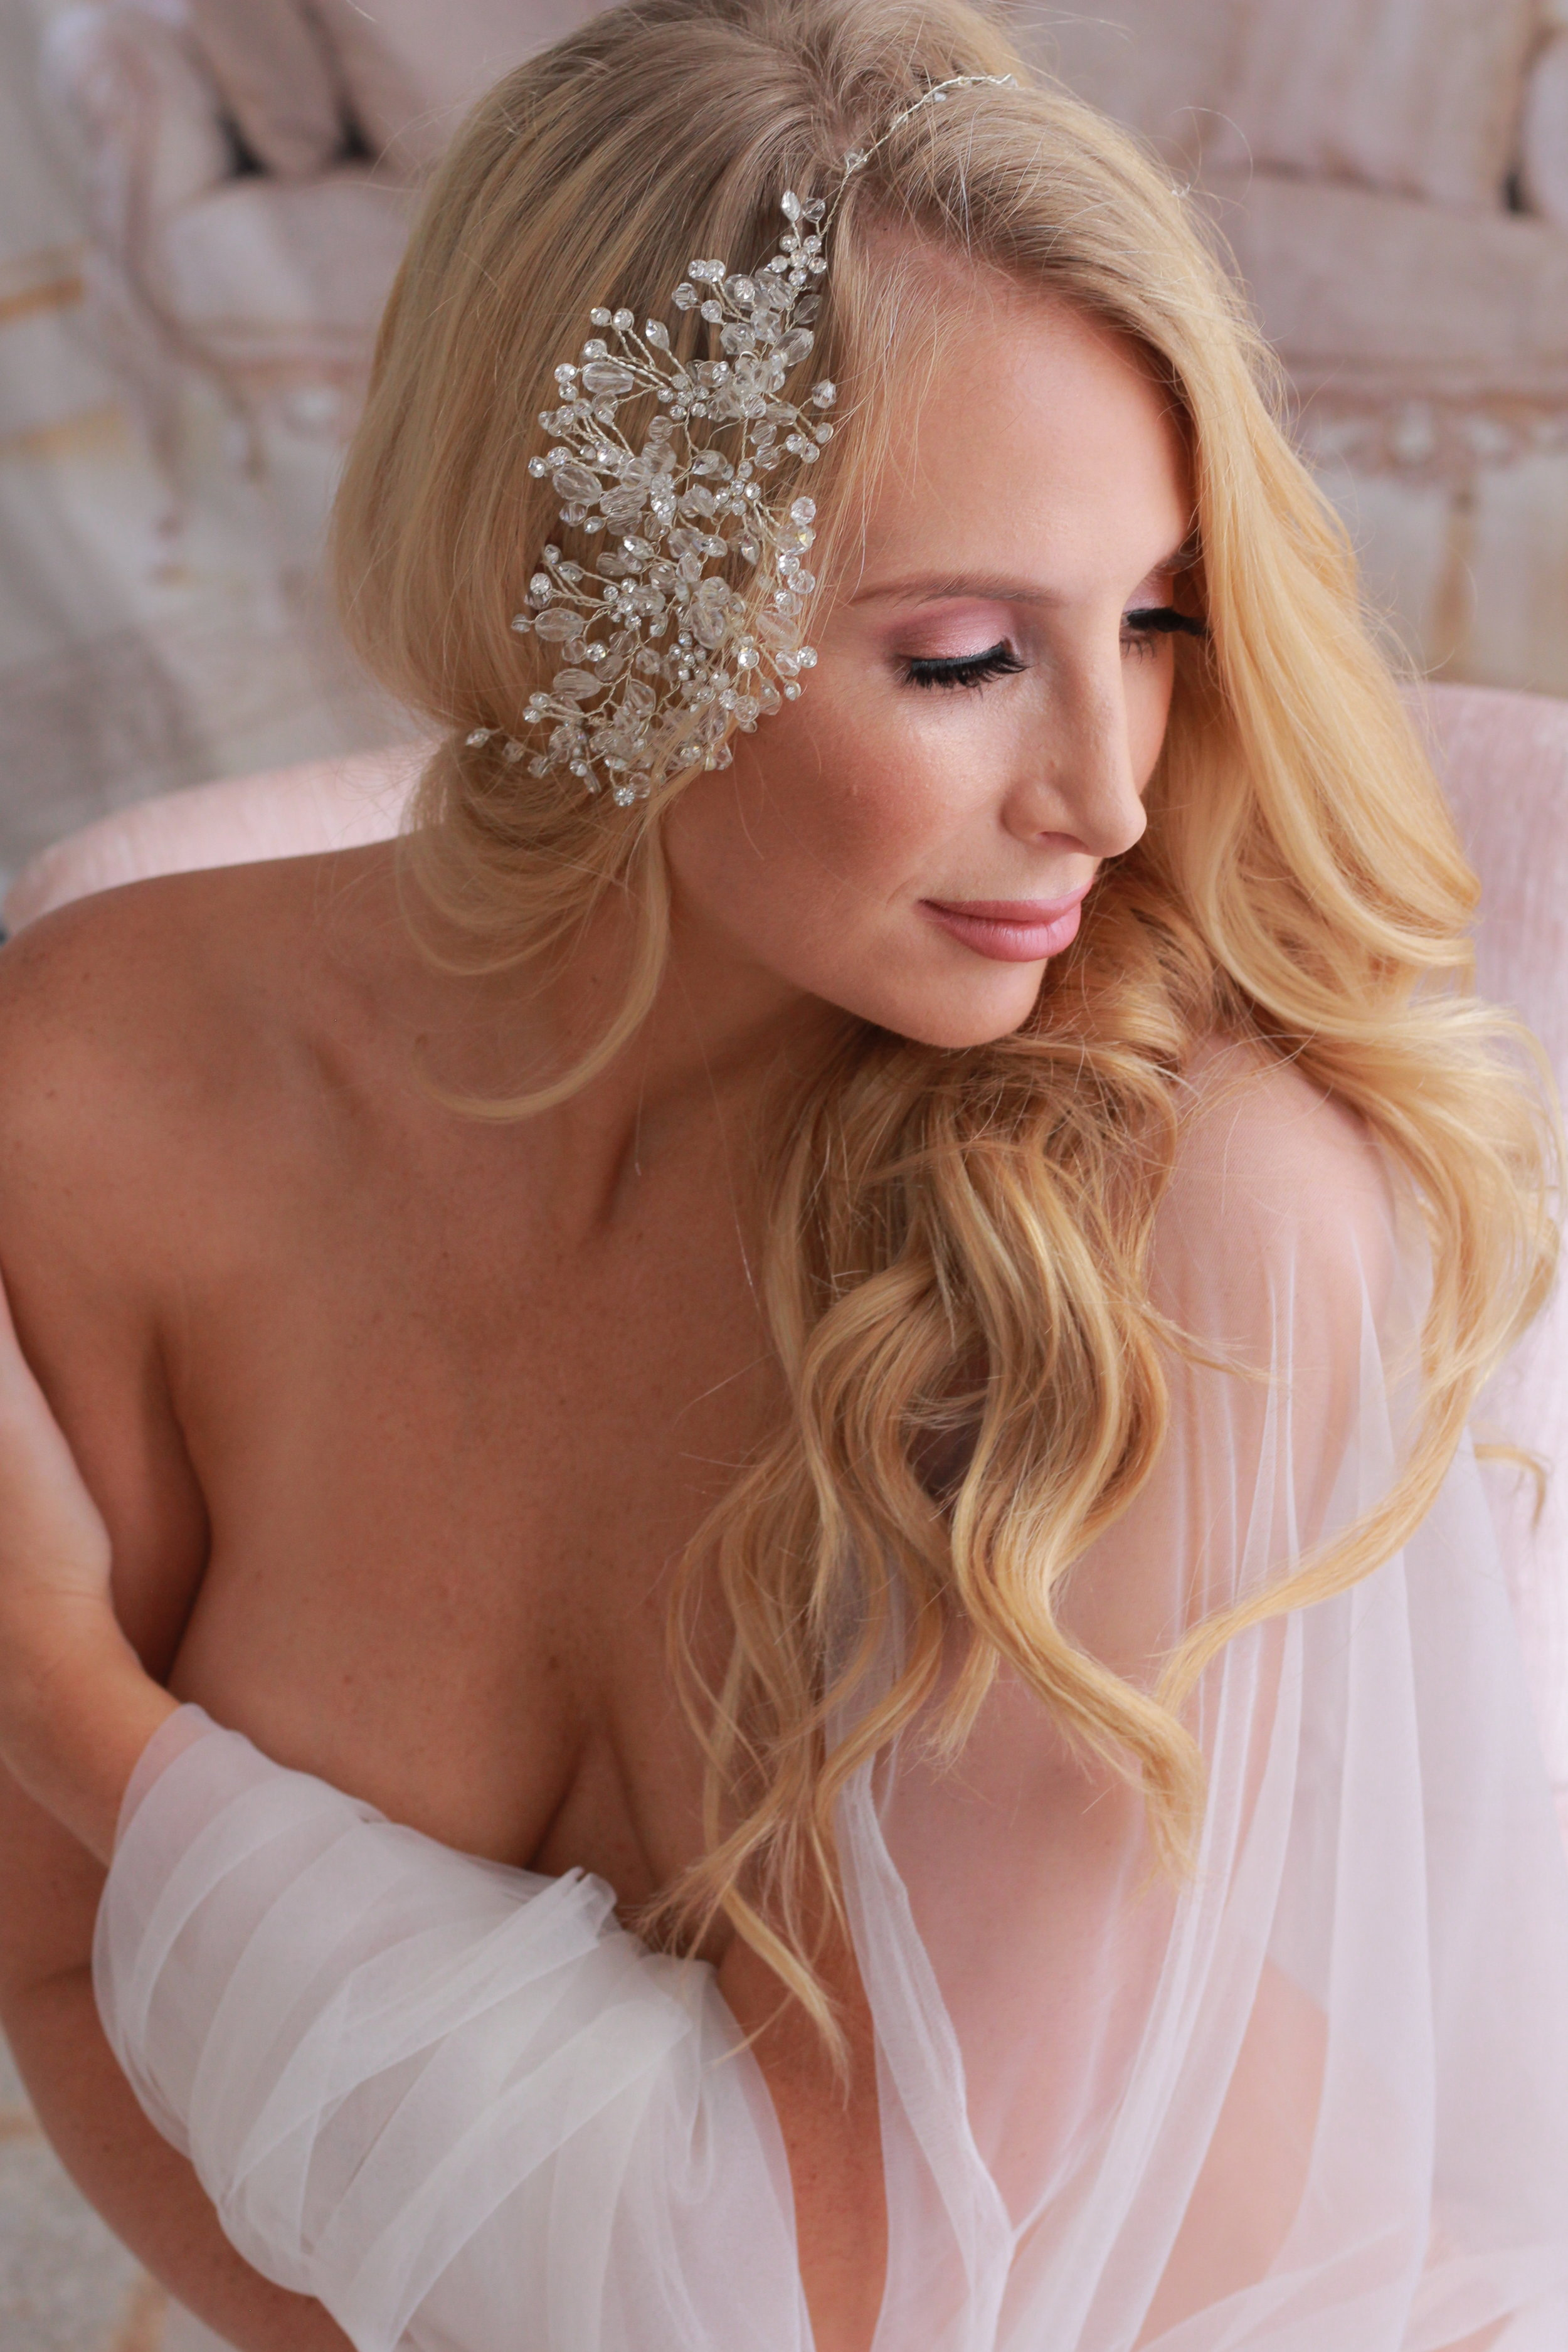 BRIDAL HAIR & MAKEUP TRIAL - We use 24 hour-wear airbrush foundation and high end water-resistant products to ensure longevity. Lashes are life- so each makeup application comes with a complimentary set of faux lashes!In Studio One Look $180 - Two Looks $250